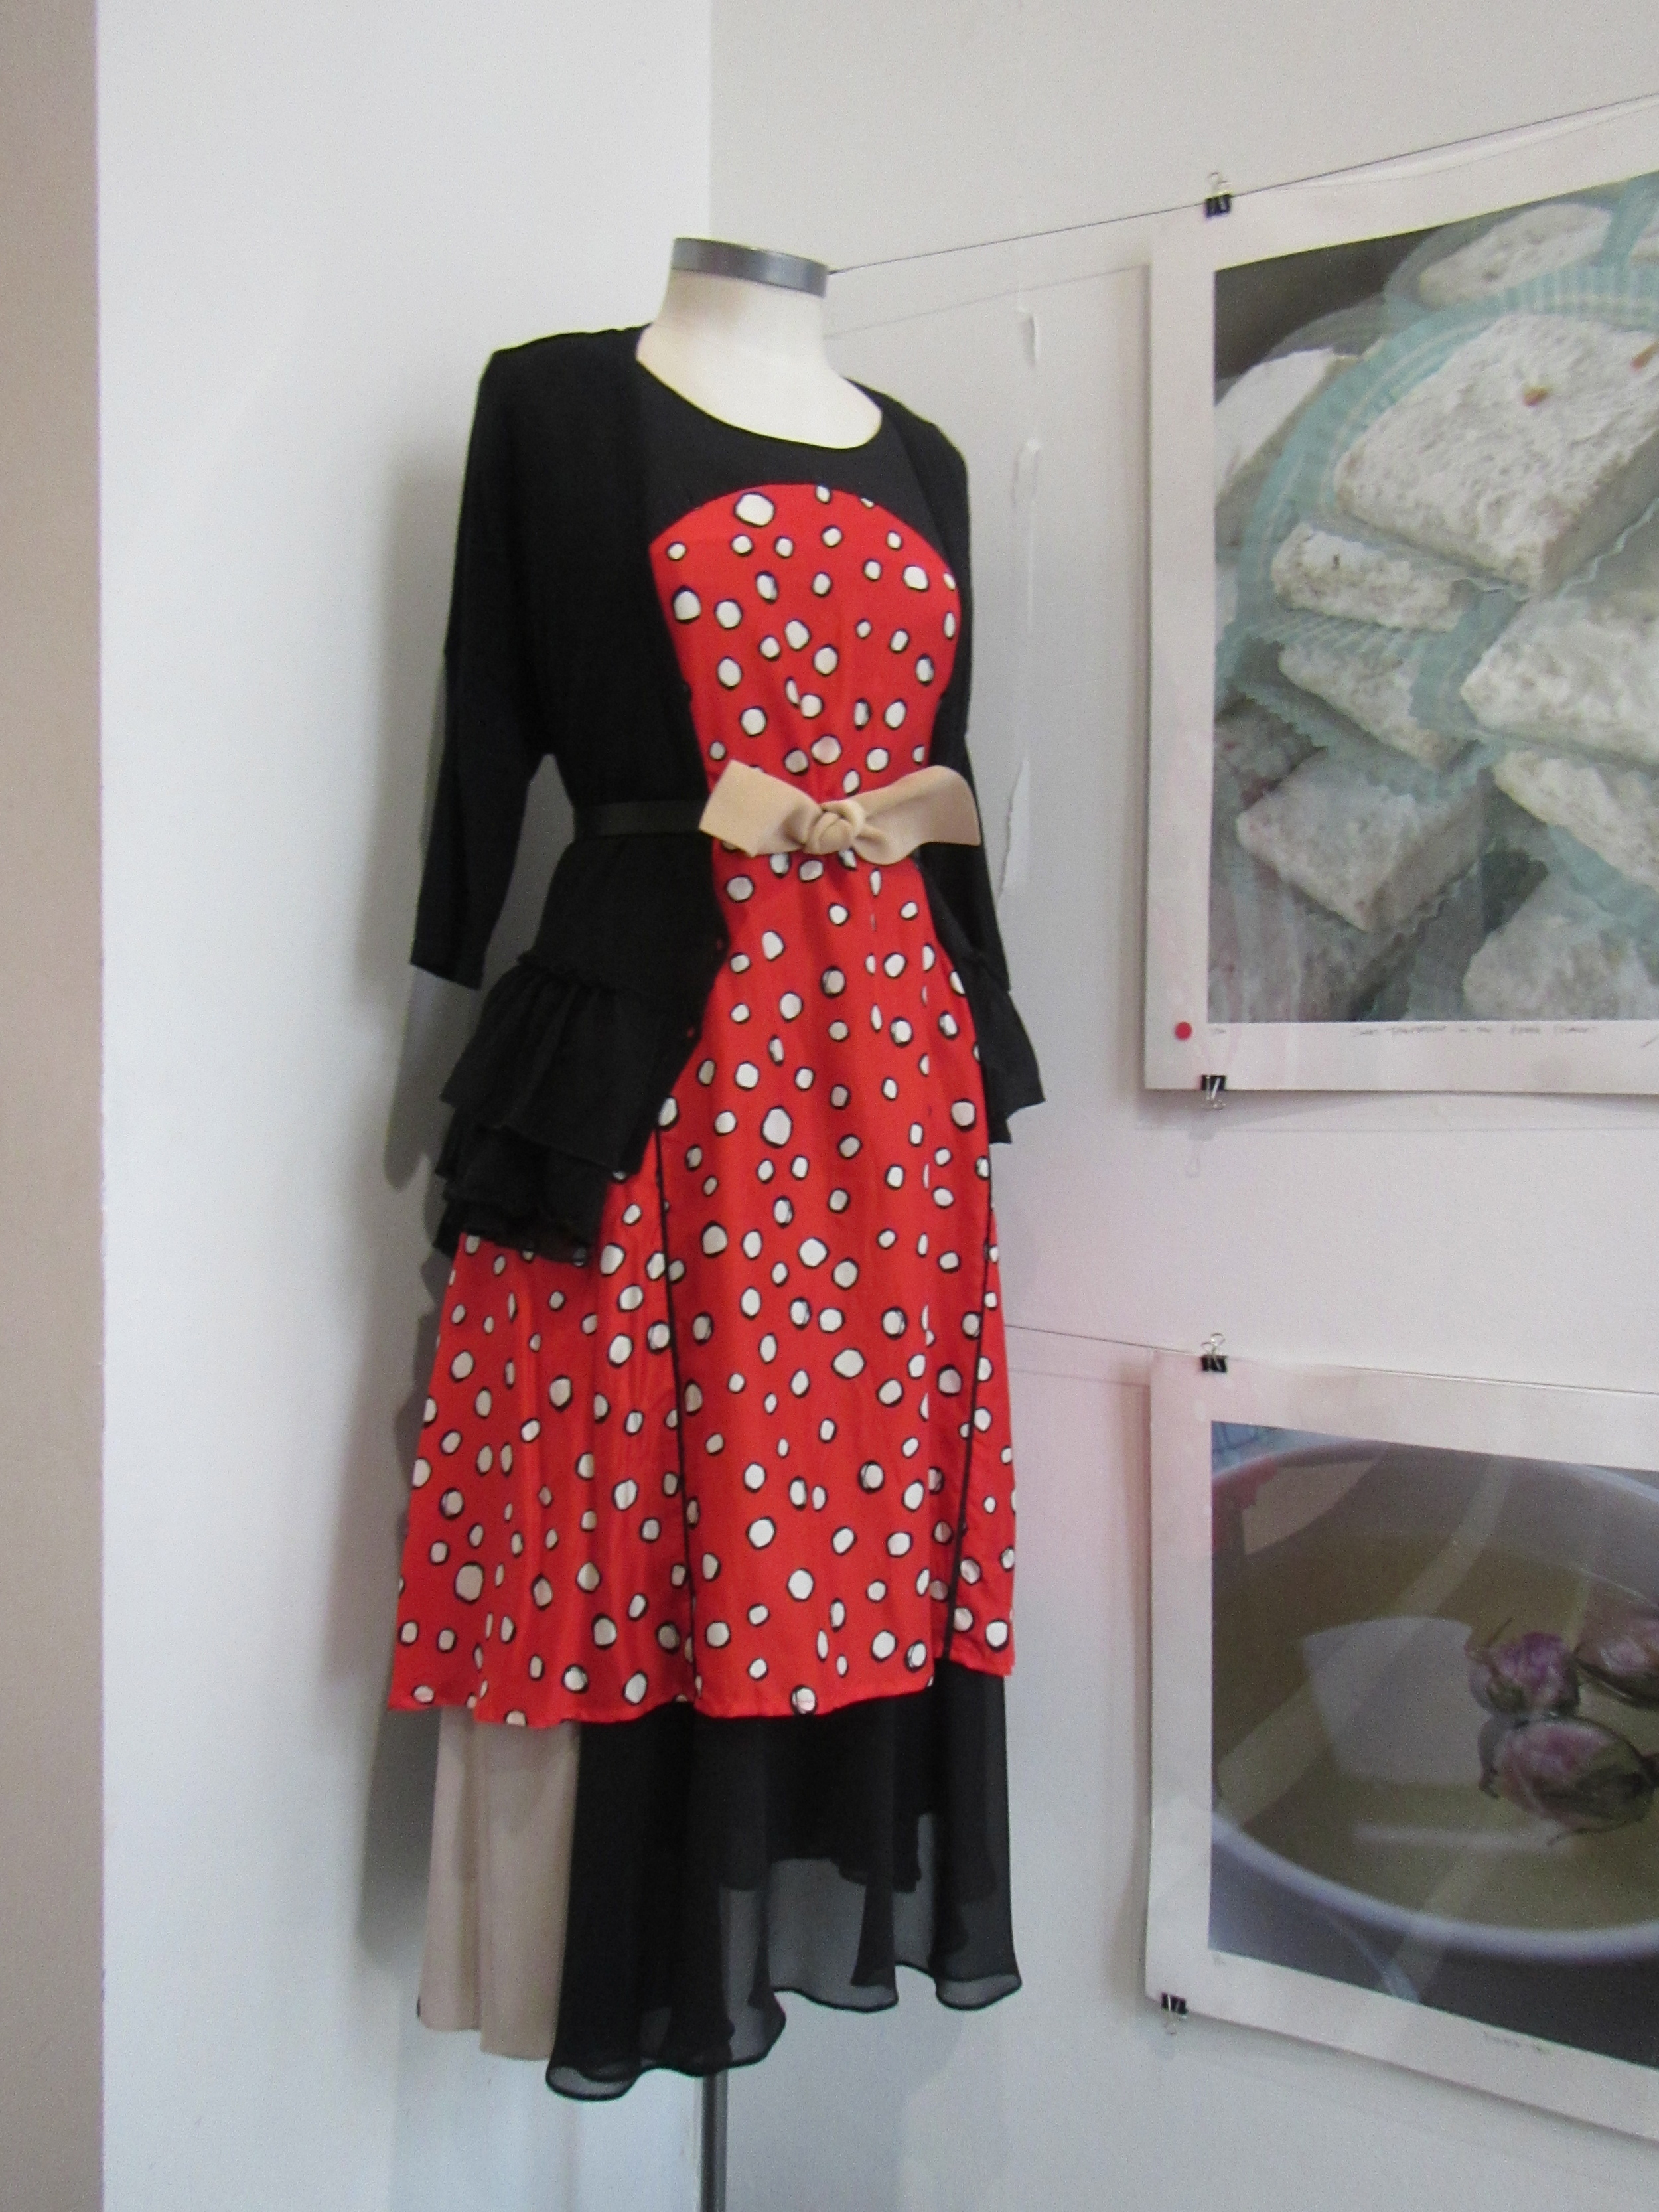 Lovely outfit at store foyer